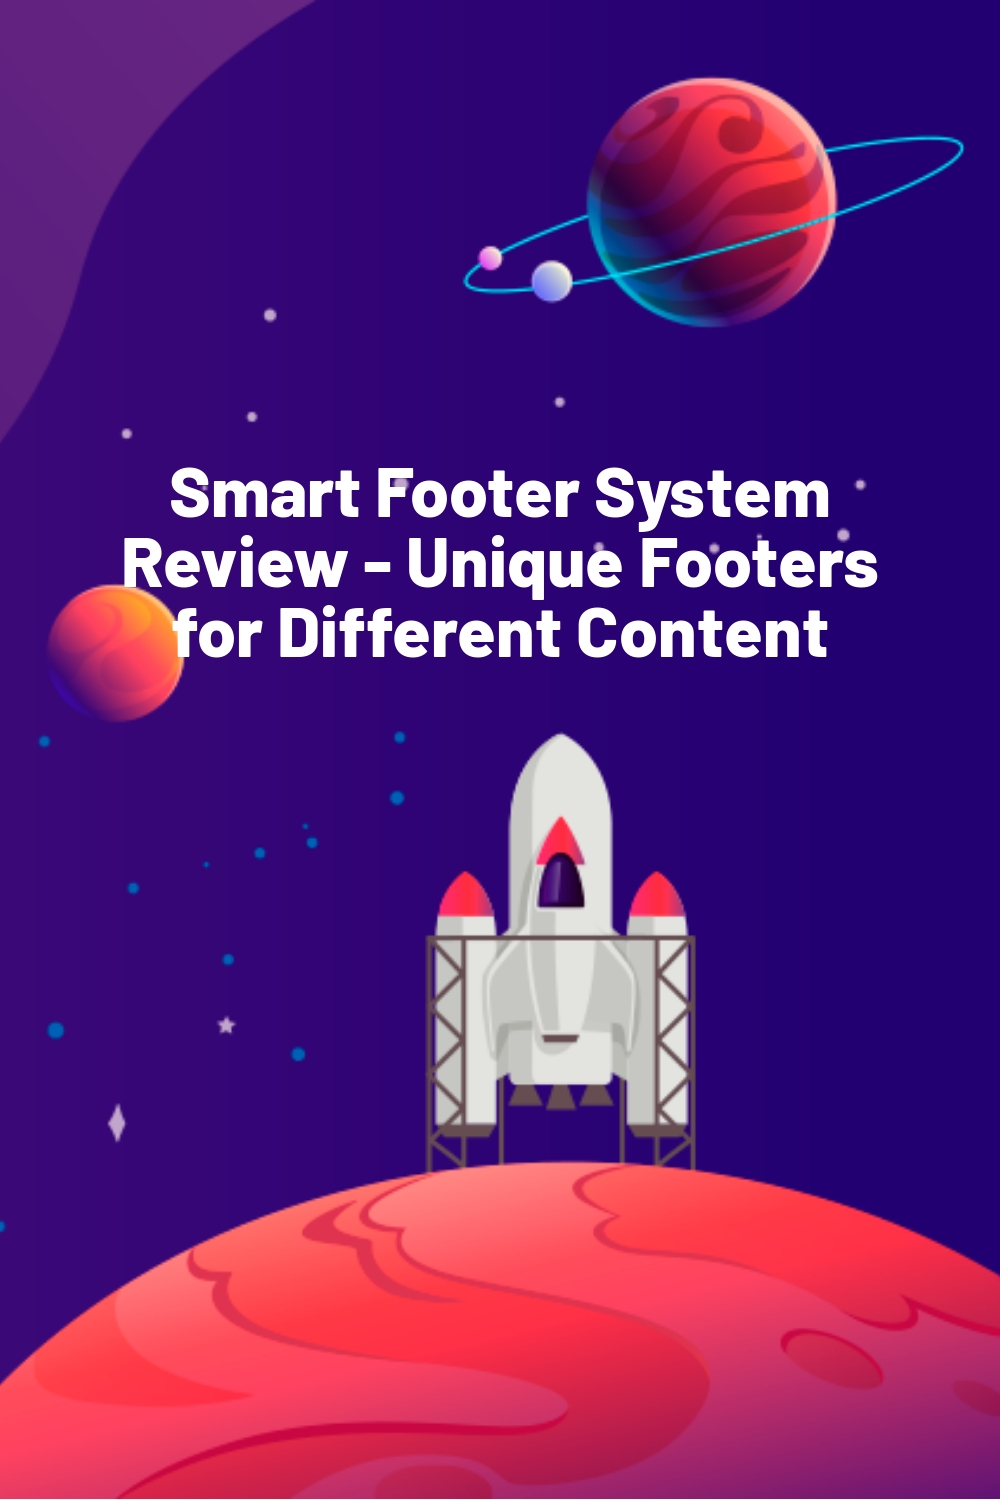 Smart Footer System Review – Unique Footers for Different Content